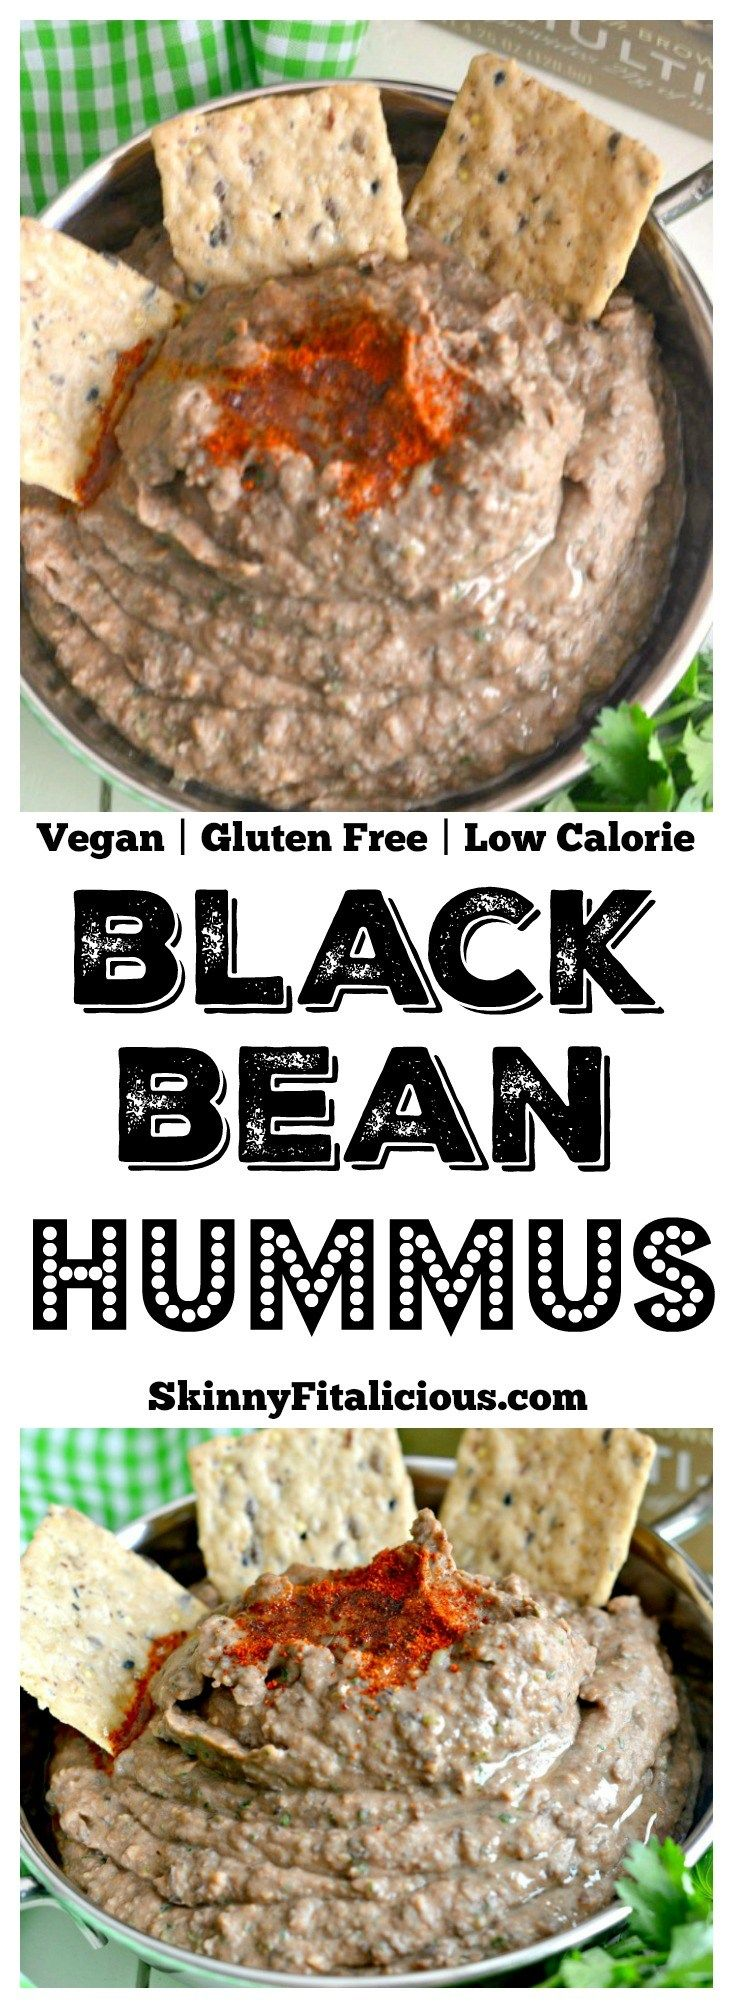 A Low Fat Spicy Black Bean Hummus Without Tahini lightened up by omitting the traditional ingredient without sacrificing taste. Pair with veggies & crackers for a healthy snack or spread on sandwich f (Spicy Food Recipes)